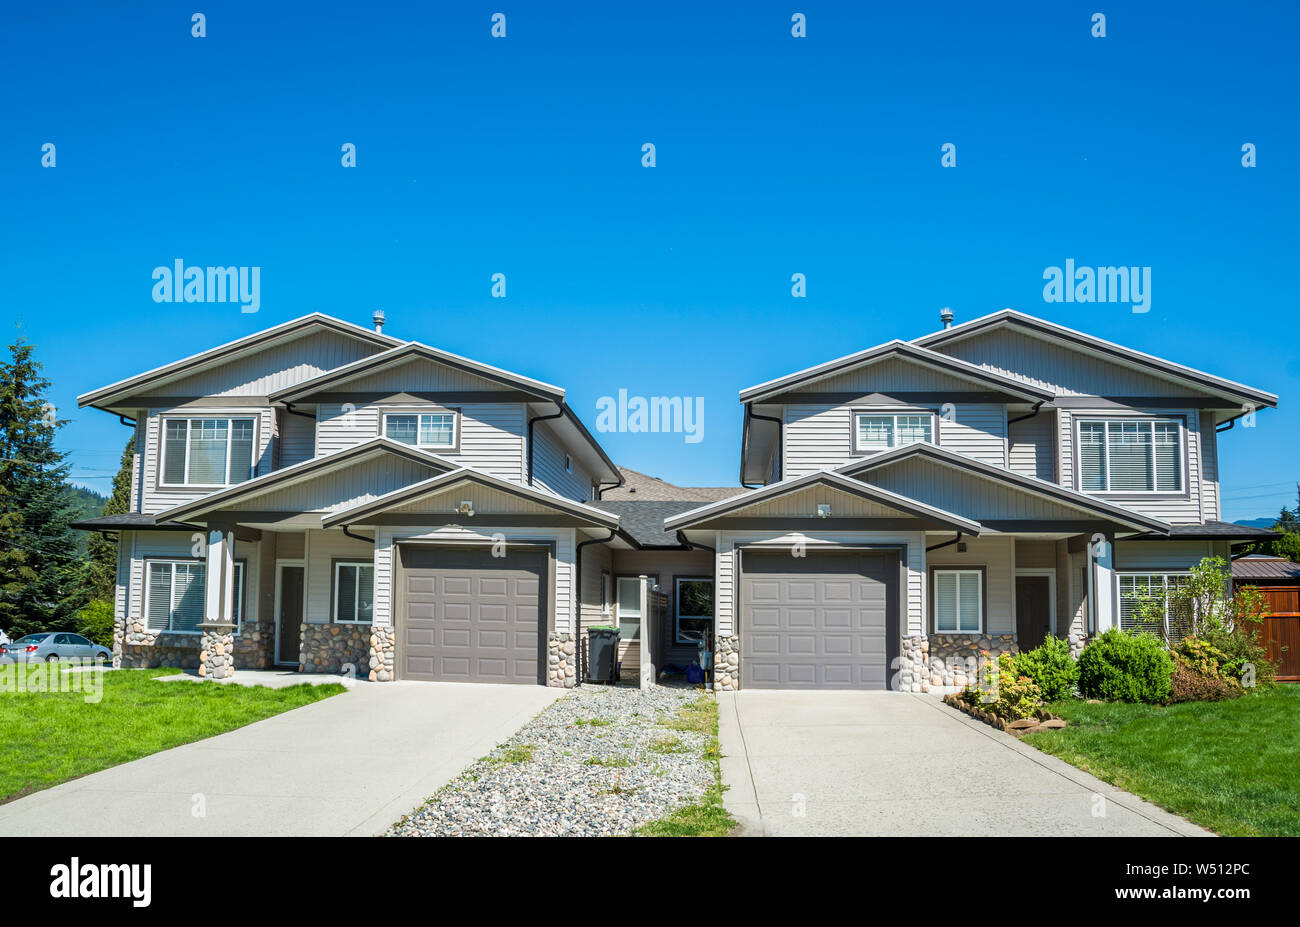 Residential duplex building with concrete drive ways and green lawns in front Stock Photo